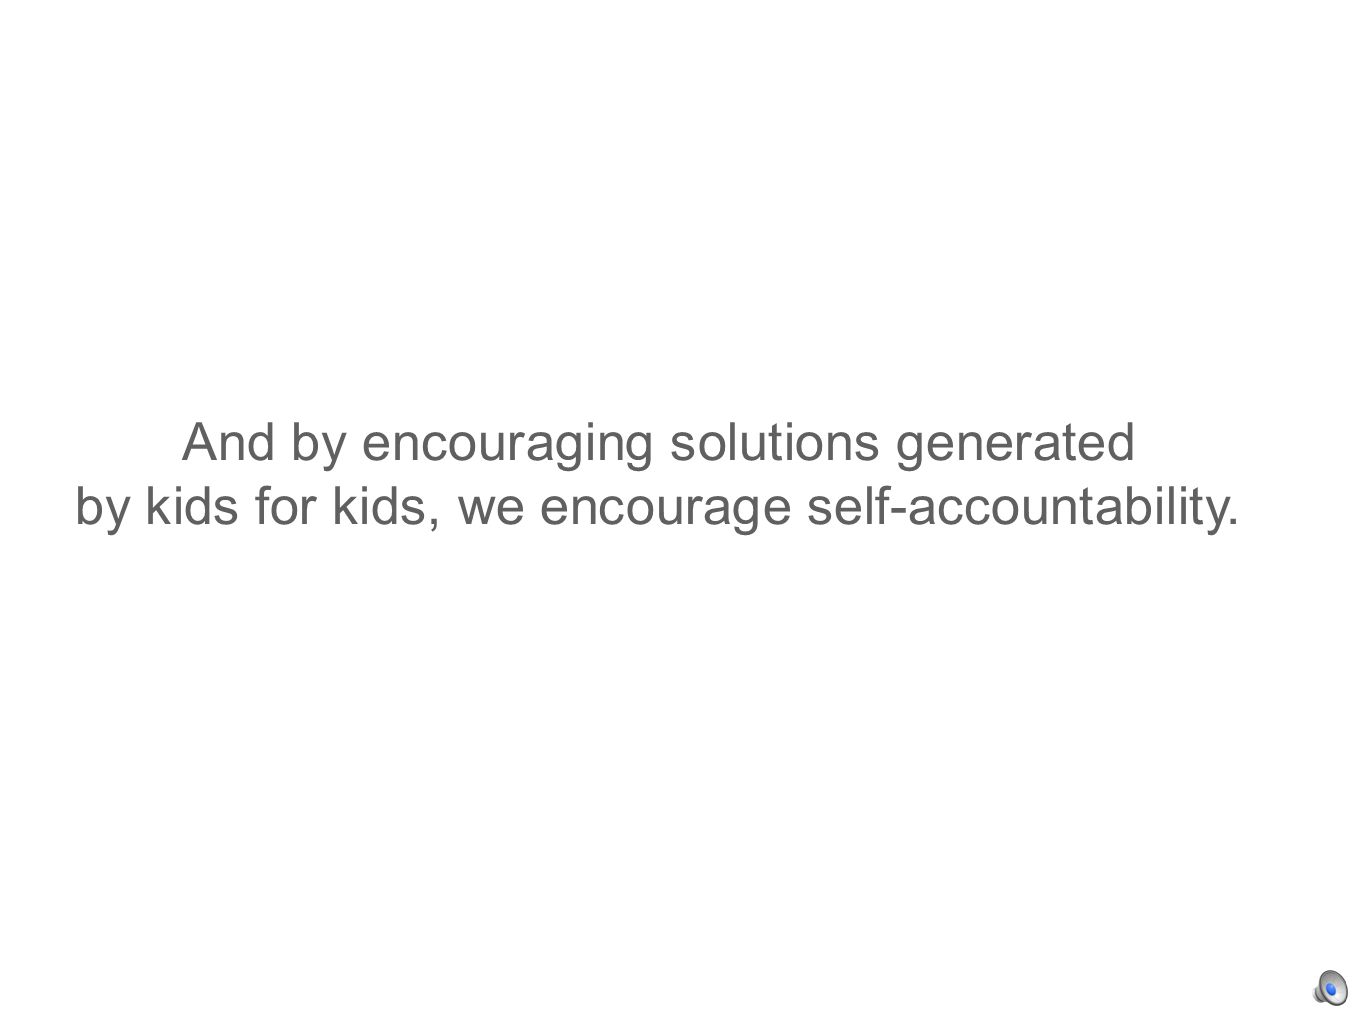 And by encouraging solutions generated by kids for kids, we encourage self-accountability.